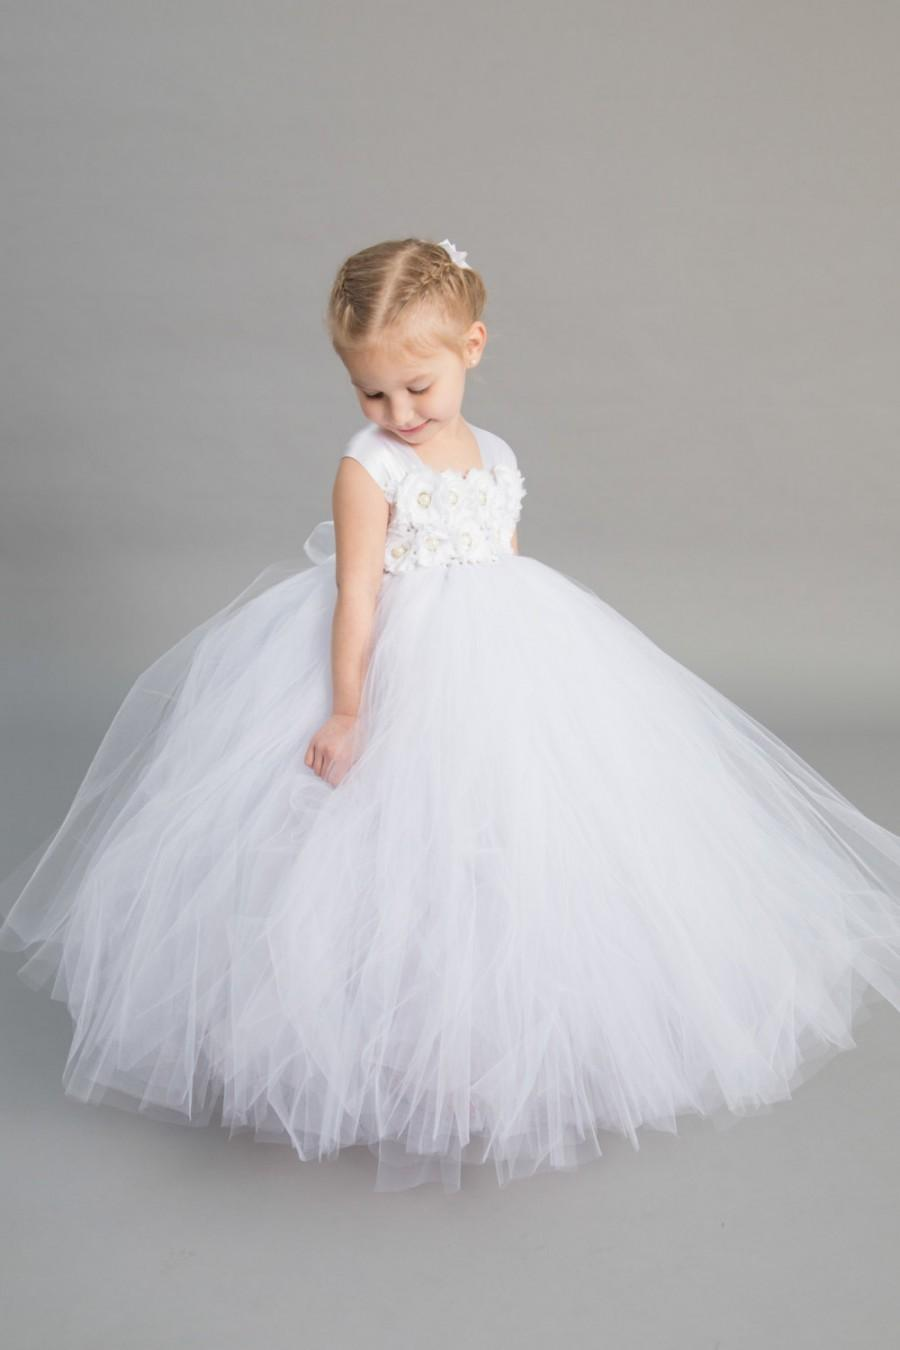 Flower Girl Dress Tulle Flower Girl Dress White Dress Tulle